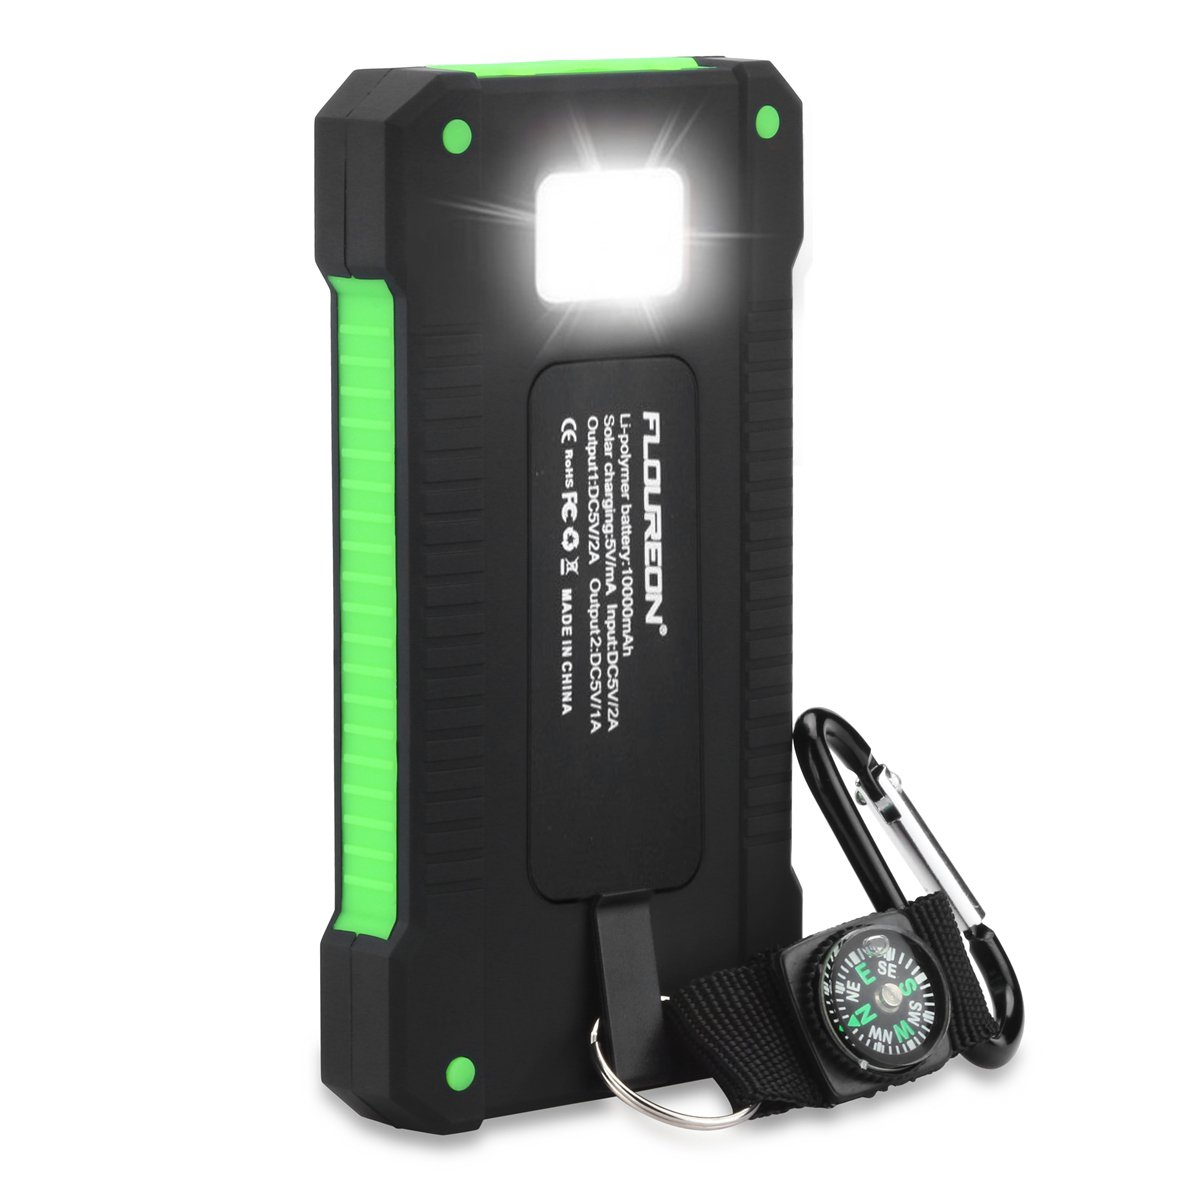 floureon Solar Charger Power Bank 10000mAh Portable Mobile Phone Charger Auxiliary Solar Charging Dual USB 1.0A/2.1A Max External Battery iPhone, iPad, Samsung Galaxy Android Phone Green